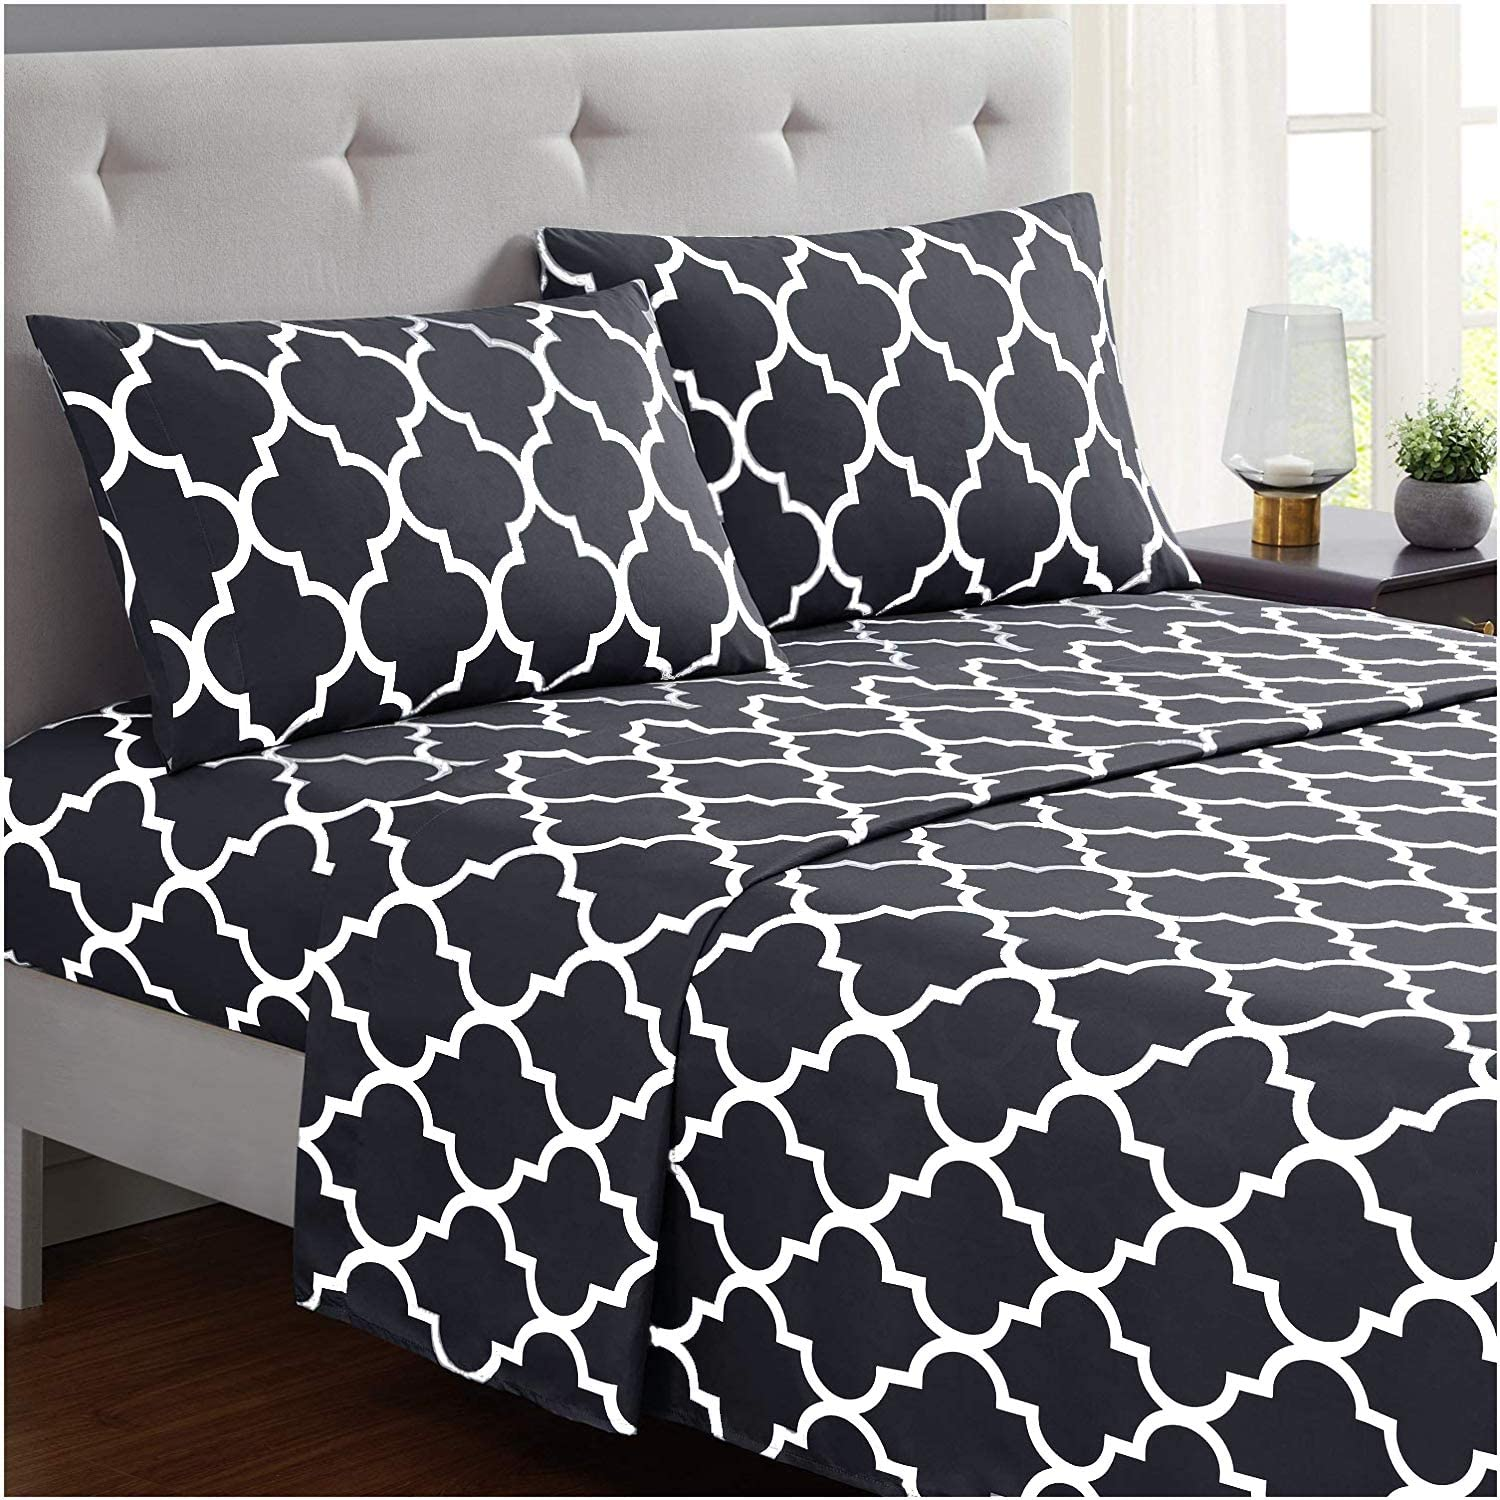 Mellanni Bed Sheet Set TwinXL-Dark-Gray - Brushed Microfiber Printed Bedding - Deep Pocket, Wrinkle, Fade, Stain Resistant - 3 Piece (TwinXL, Quatrefoil Dark Gray)